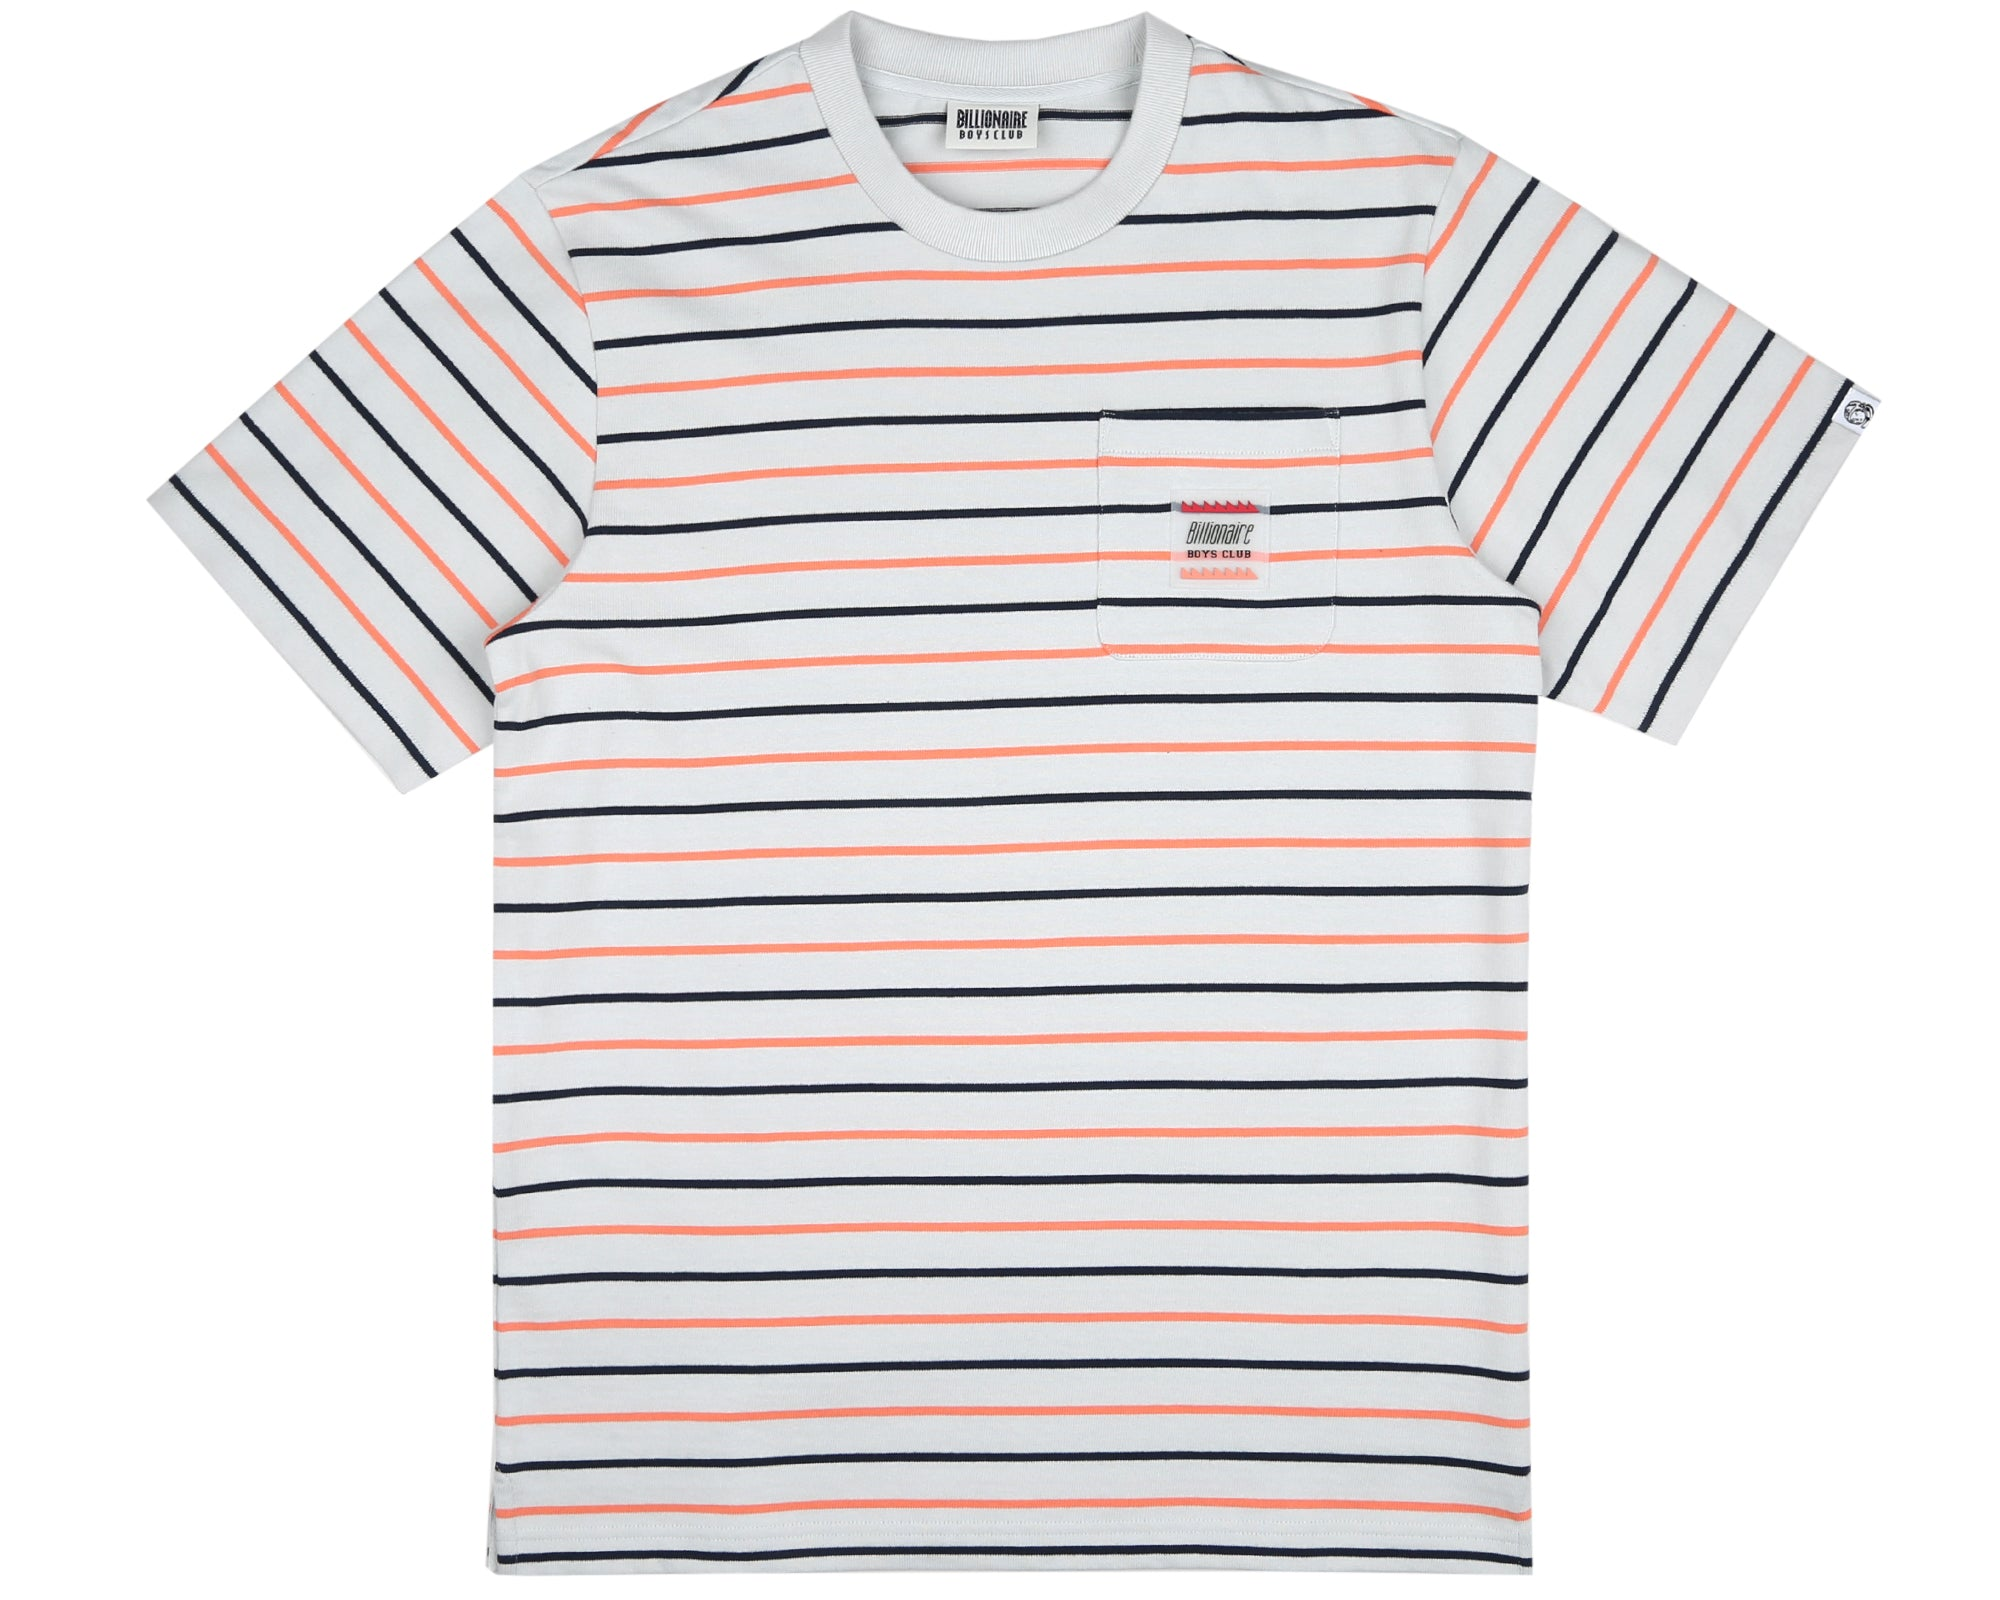 WOVEN STRIPE POCKET T-SHIRT - LIGHT BLUE